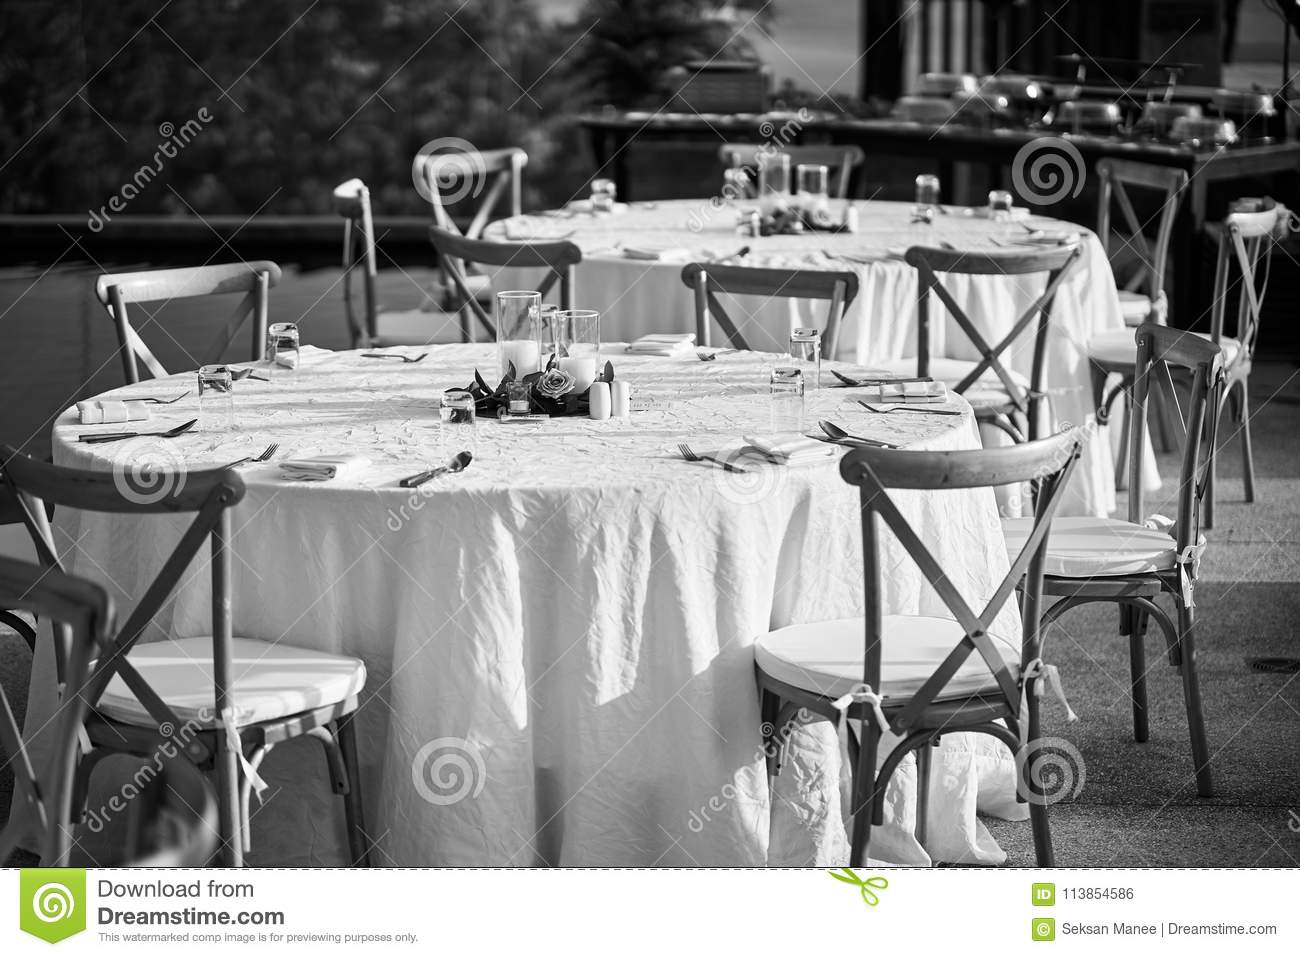 Wedding Reception Dinner Table Setting With Folding Lawn Chairs In Black And White Stock Photo Image Of Petals Decoration 113854586